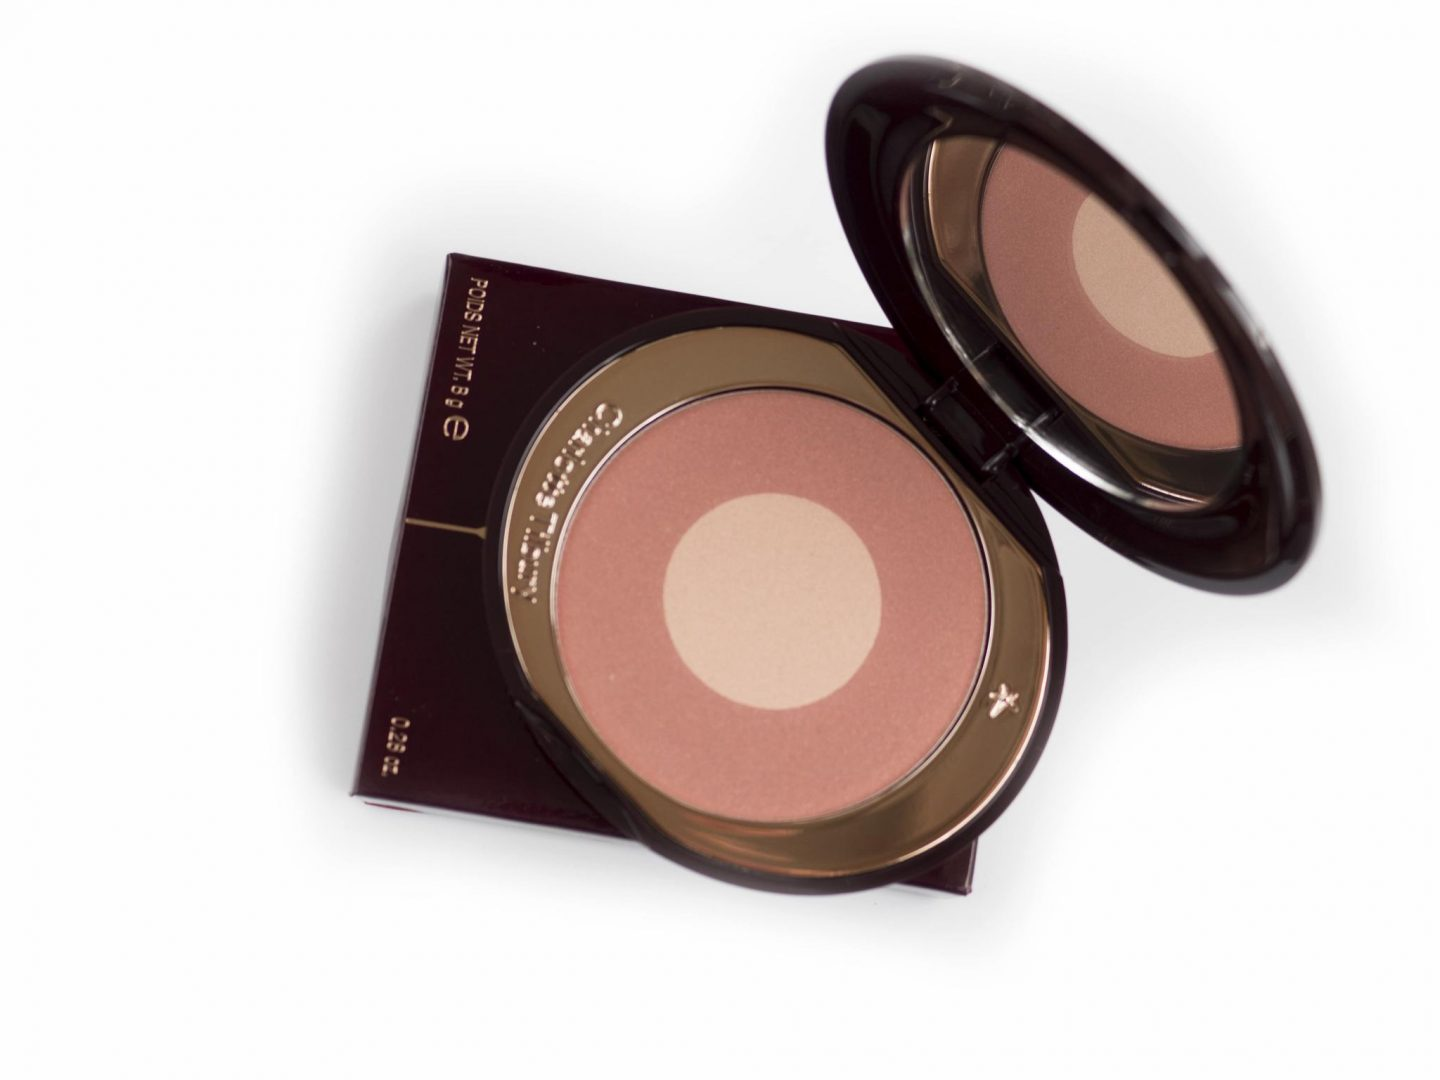 Charlotte Tilbury Pillow Talk Cheek to Chic Blush